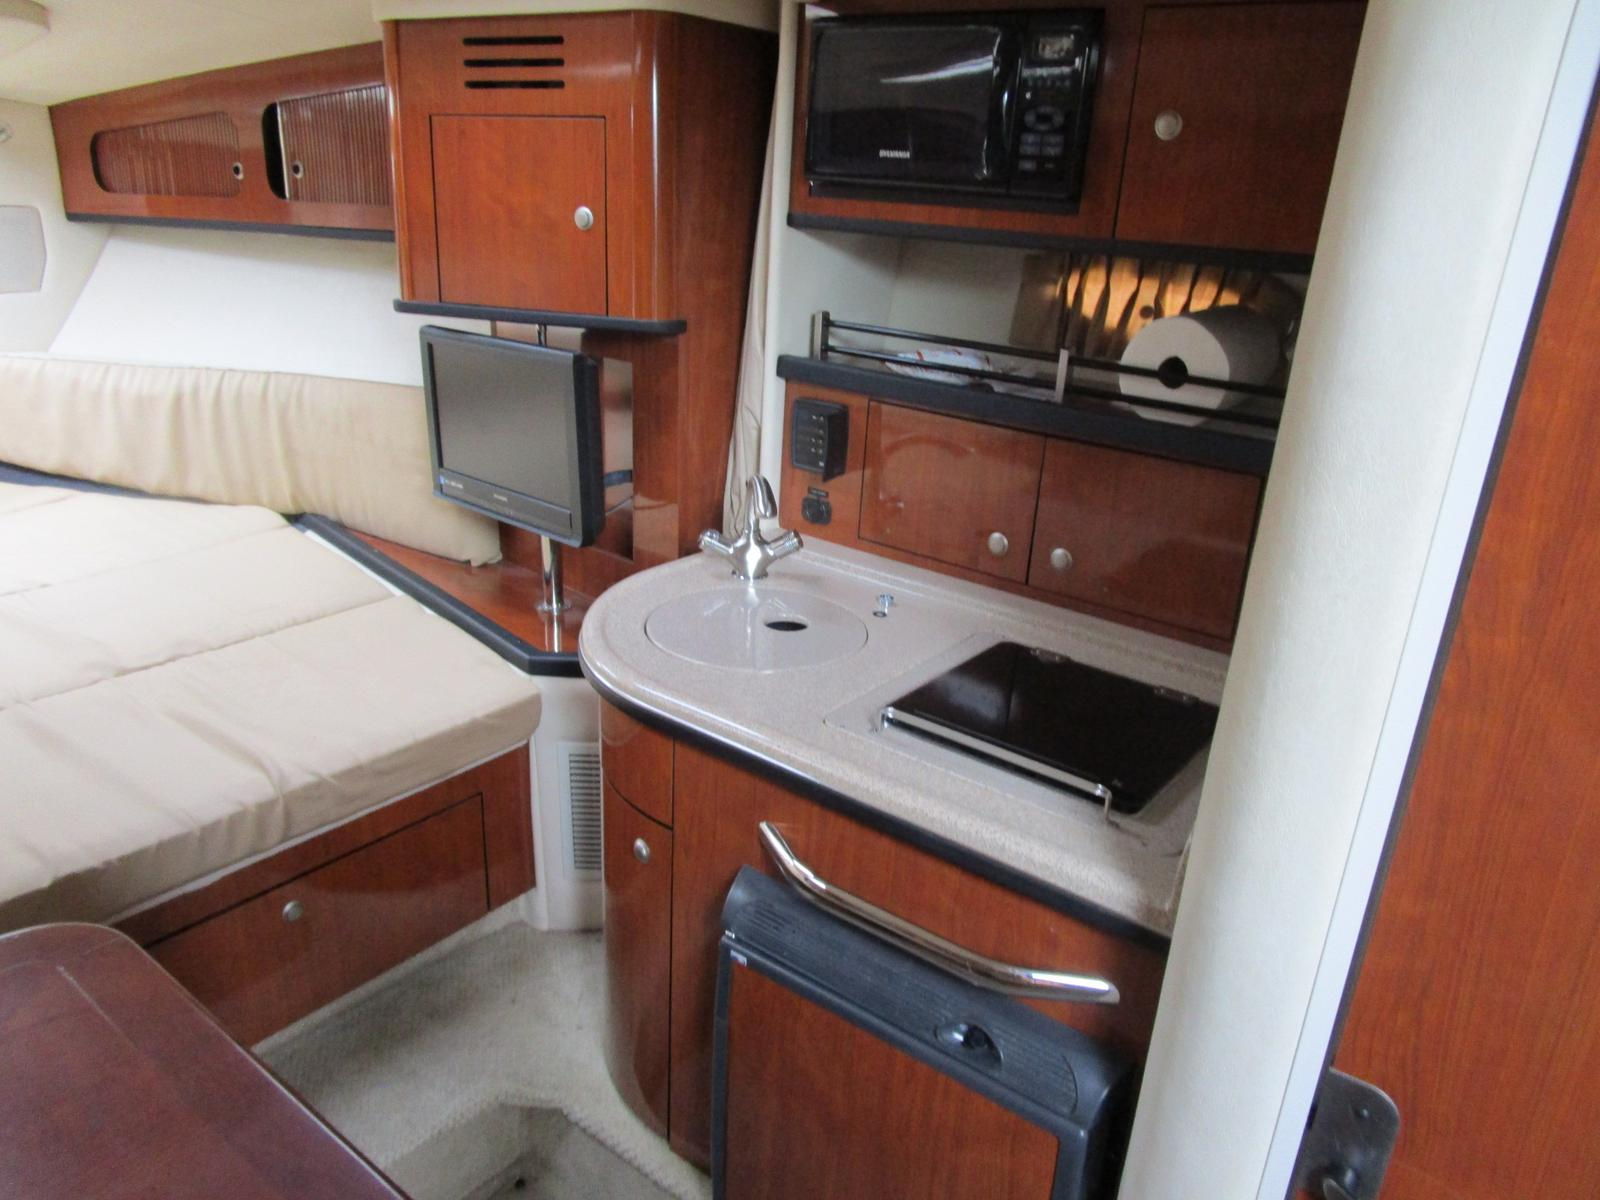 2007 Sea Ray boat for sale, model of the boat is 290 Sundancer & Image # 9 of 10